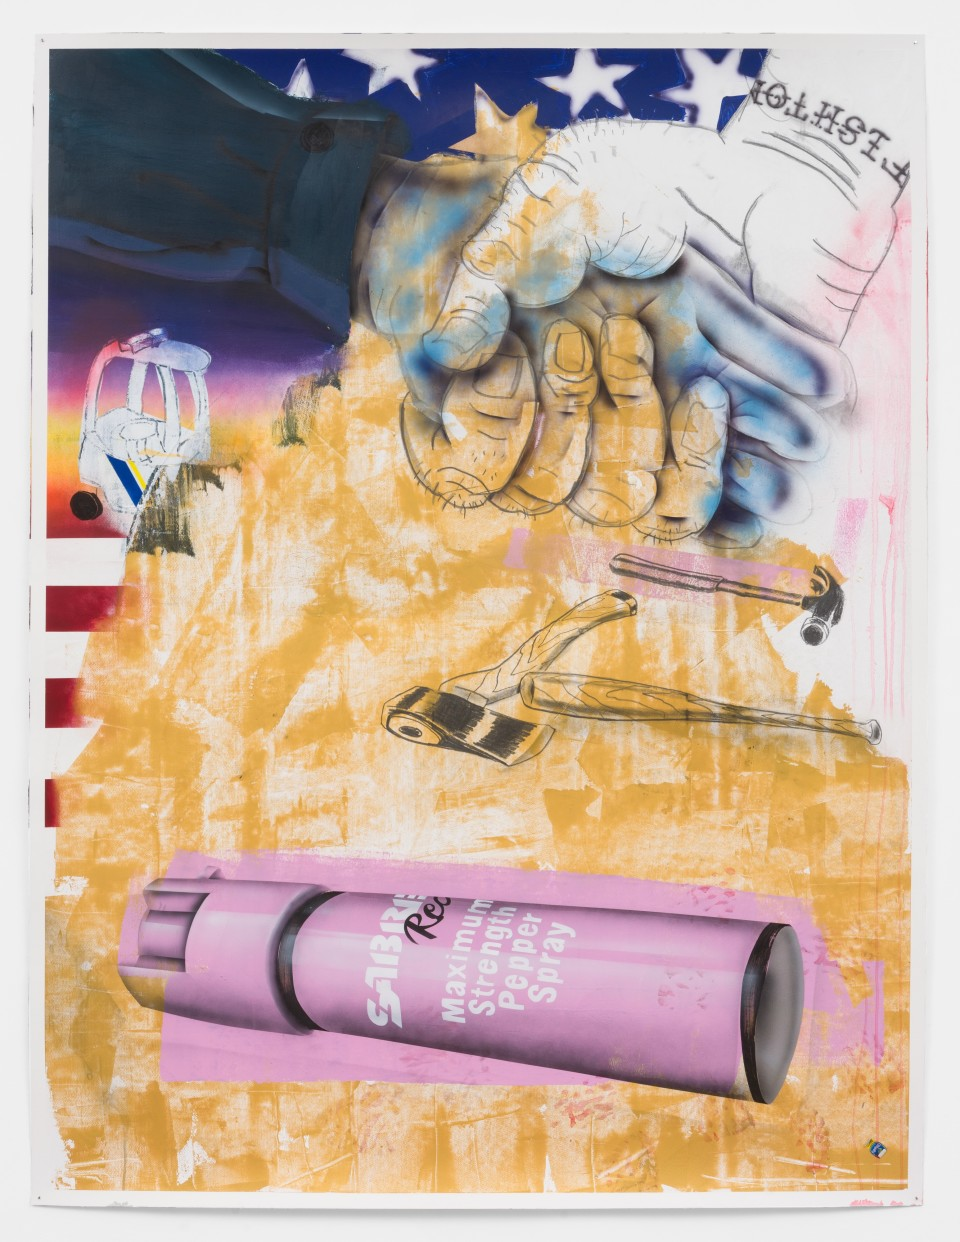 """Image: Pat Phillips  Untitled """"The first line of defense...the only defense...the only LEGAL defense against domestic terrorist"""", 2021  signed and dated verso  acrylic, graphite stick, graphite ingot, airbrush, aerosol paint on paper  paper size: 72 1/2 x 55 inches (184.2 x 139.7 cm) framed size: 75 1/4 x 58 1/8 inches (191.15 x 147.64 cm)"""